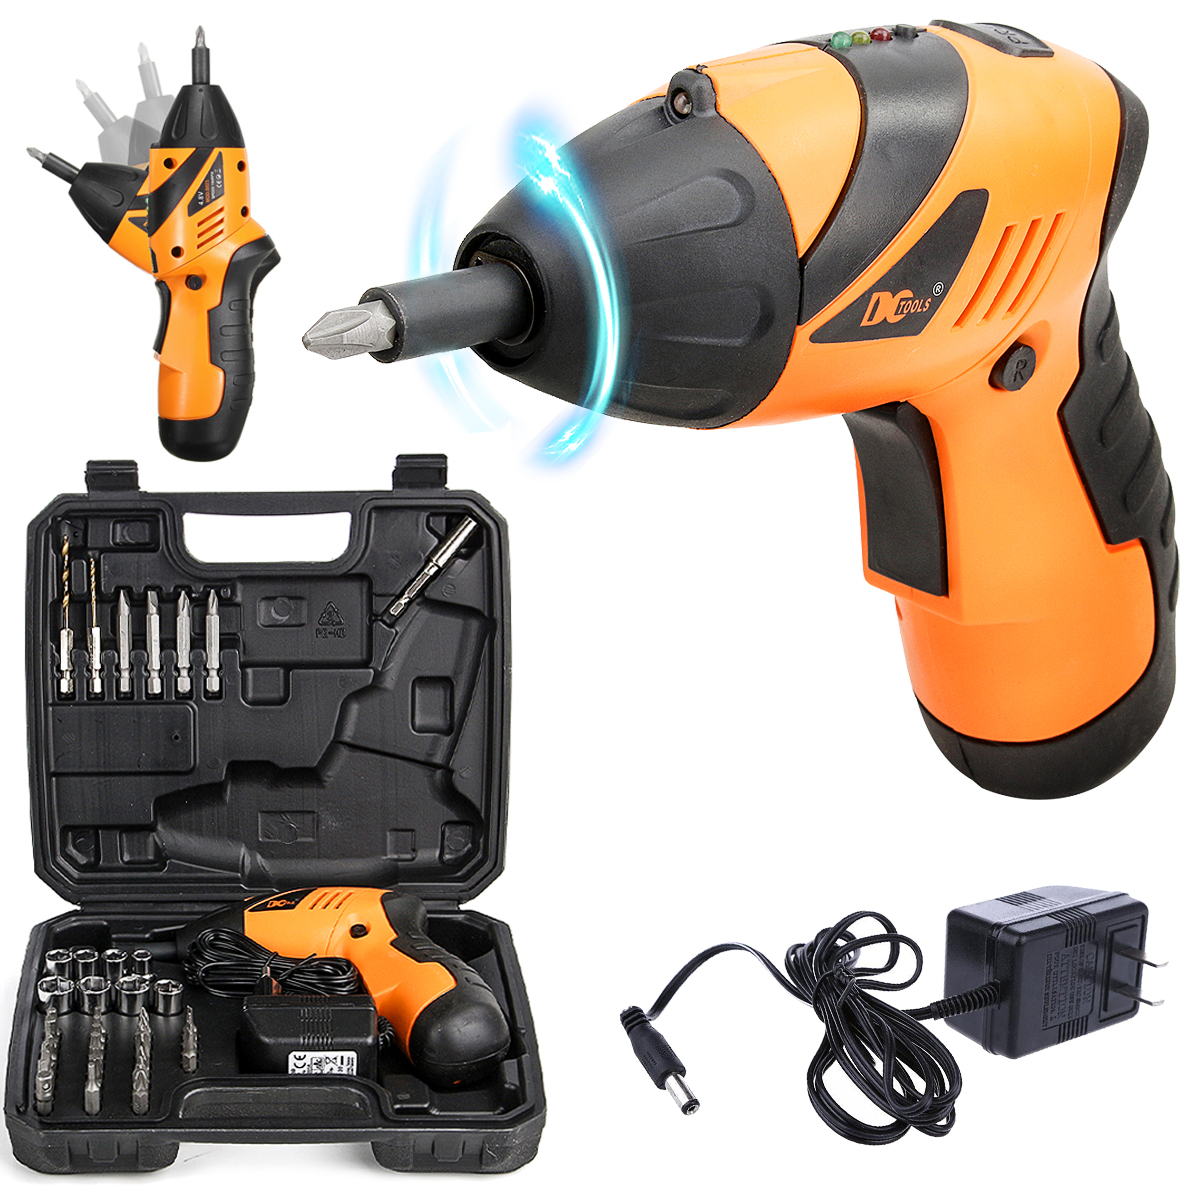 with 33 drills Autoday 3.6V Smart 6 Modes Adjustable Torques Cordless Rechargeable Screwdriver Tool Kits Bosch Electric Screwdriver Blue